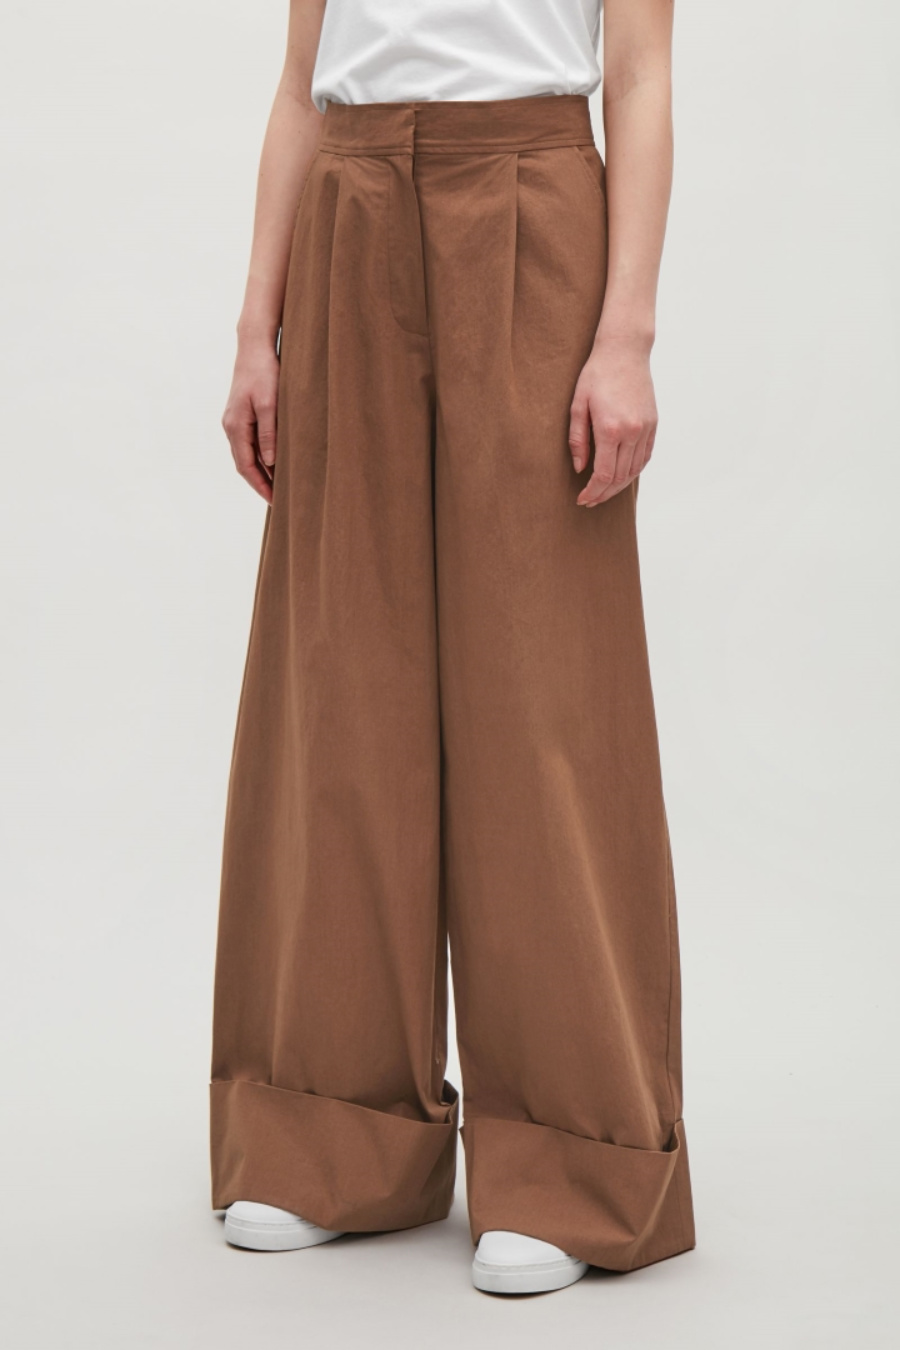 cos WIDE-LEG TROUSERS WITH TURN UPS €89. Pantalón confy